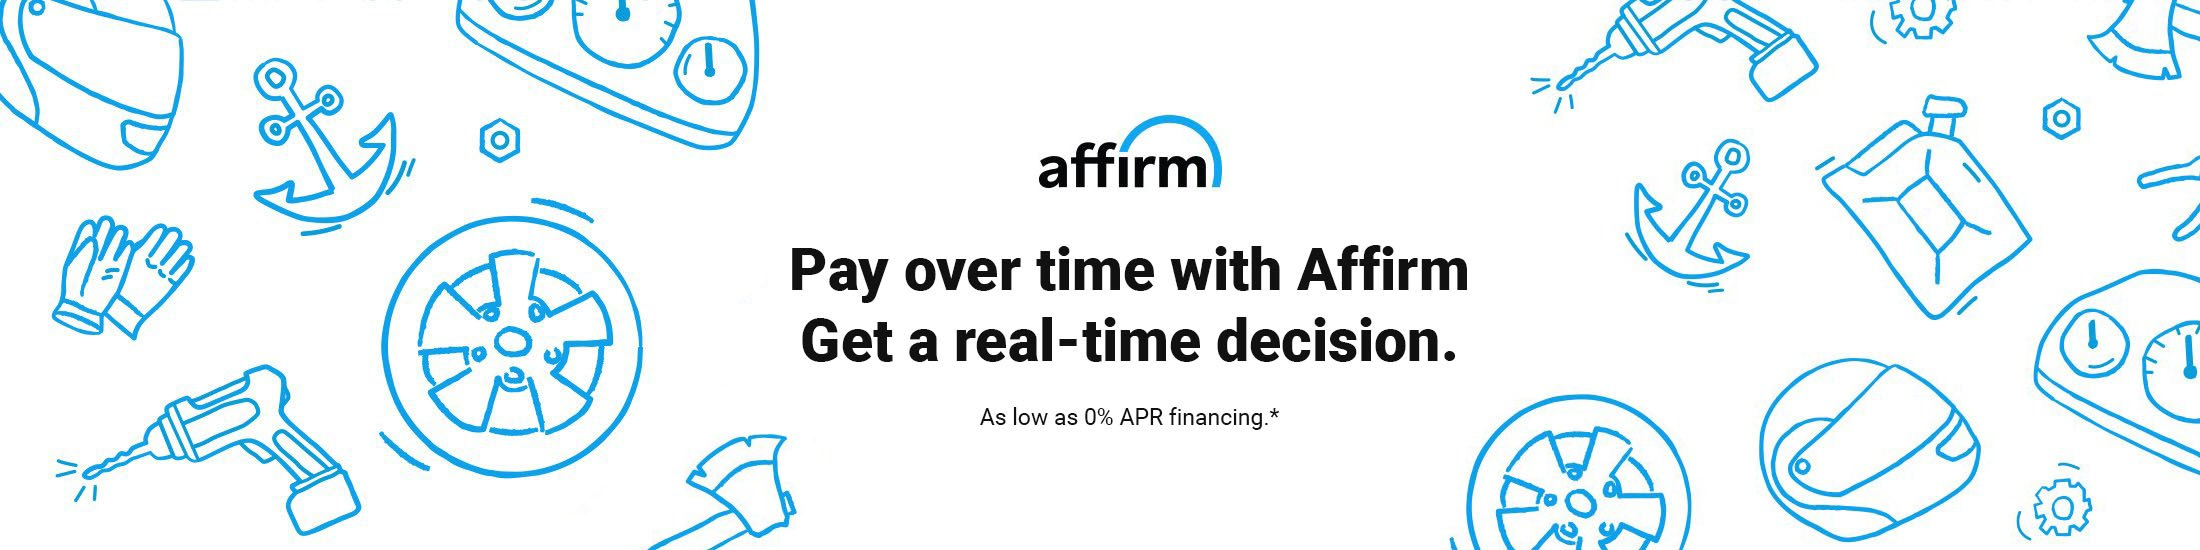 Affirm | Easy Financing | Pay Later with Affirm - TOOLSiD com